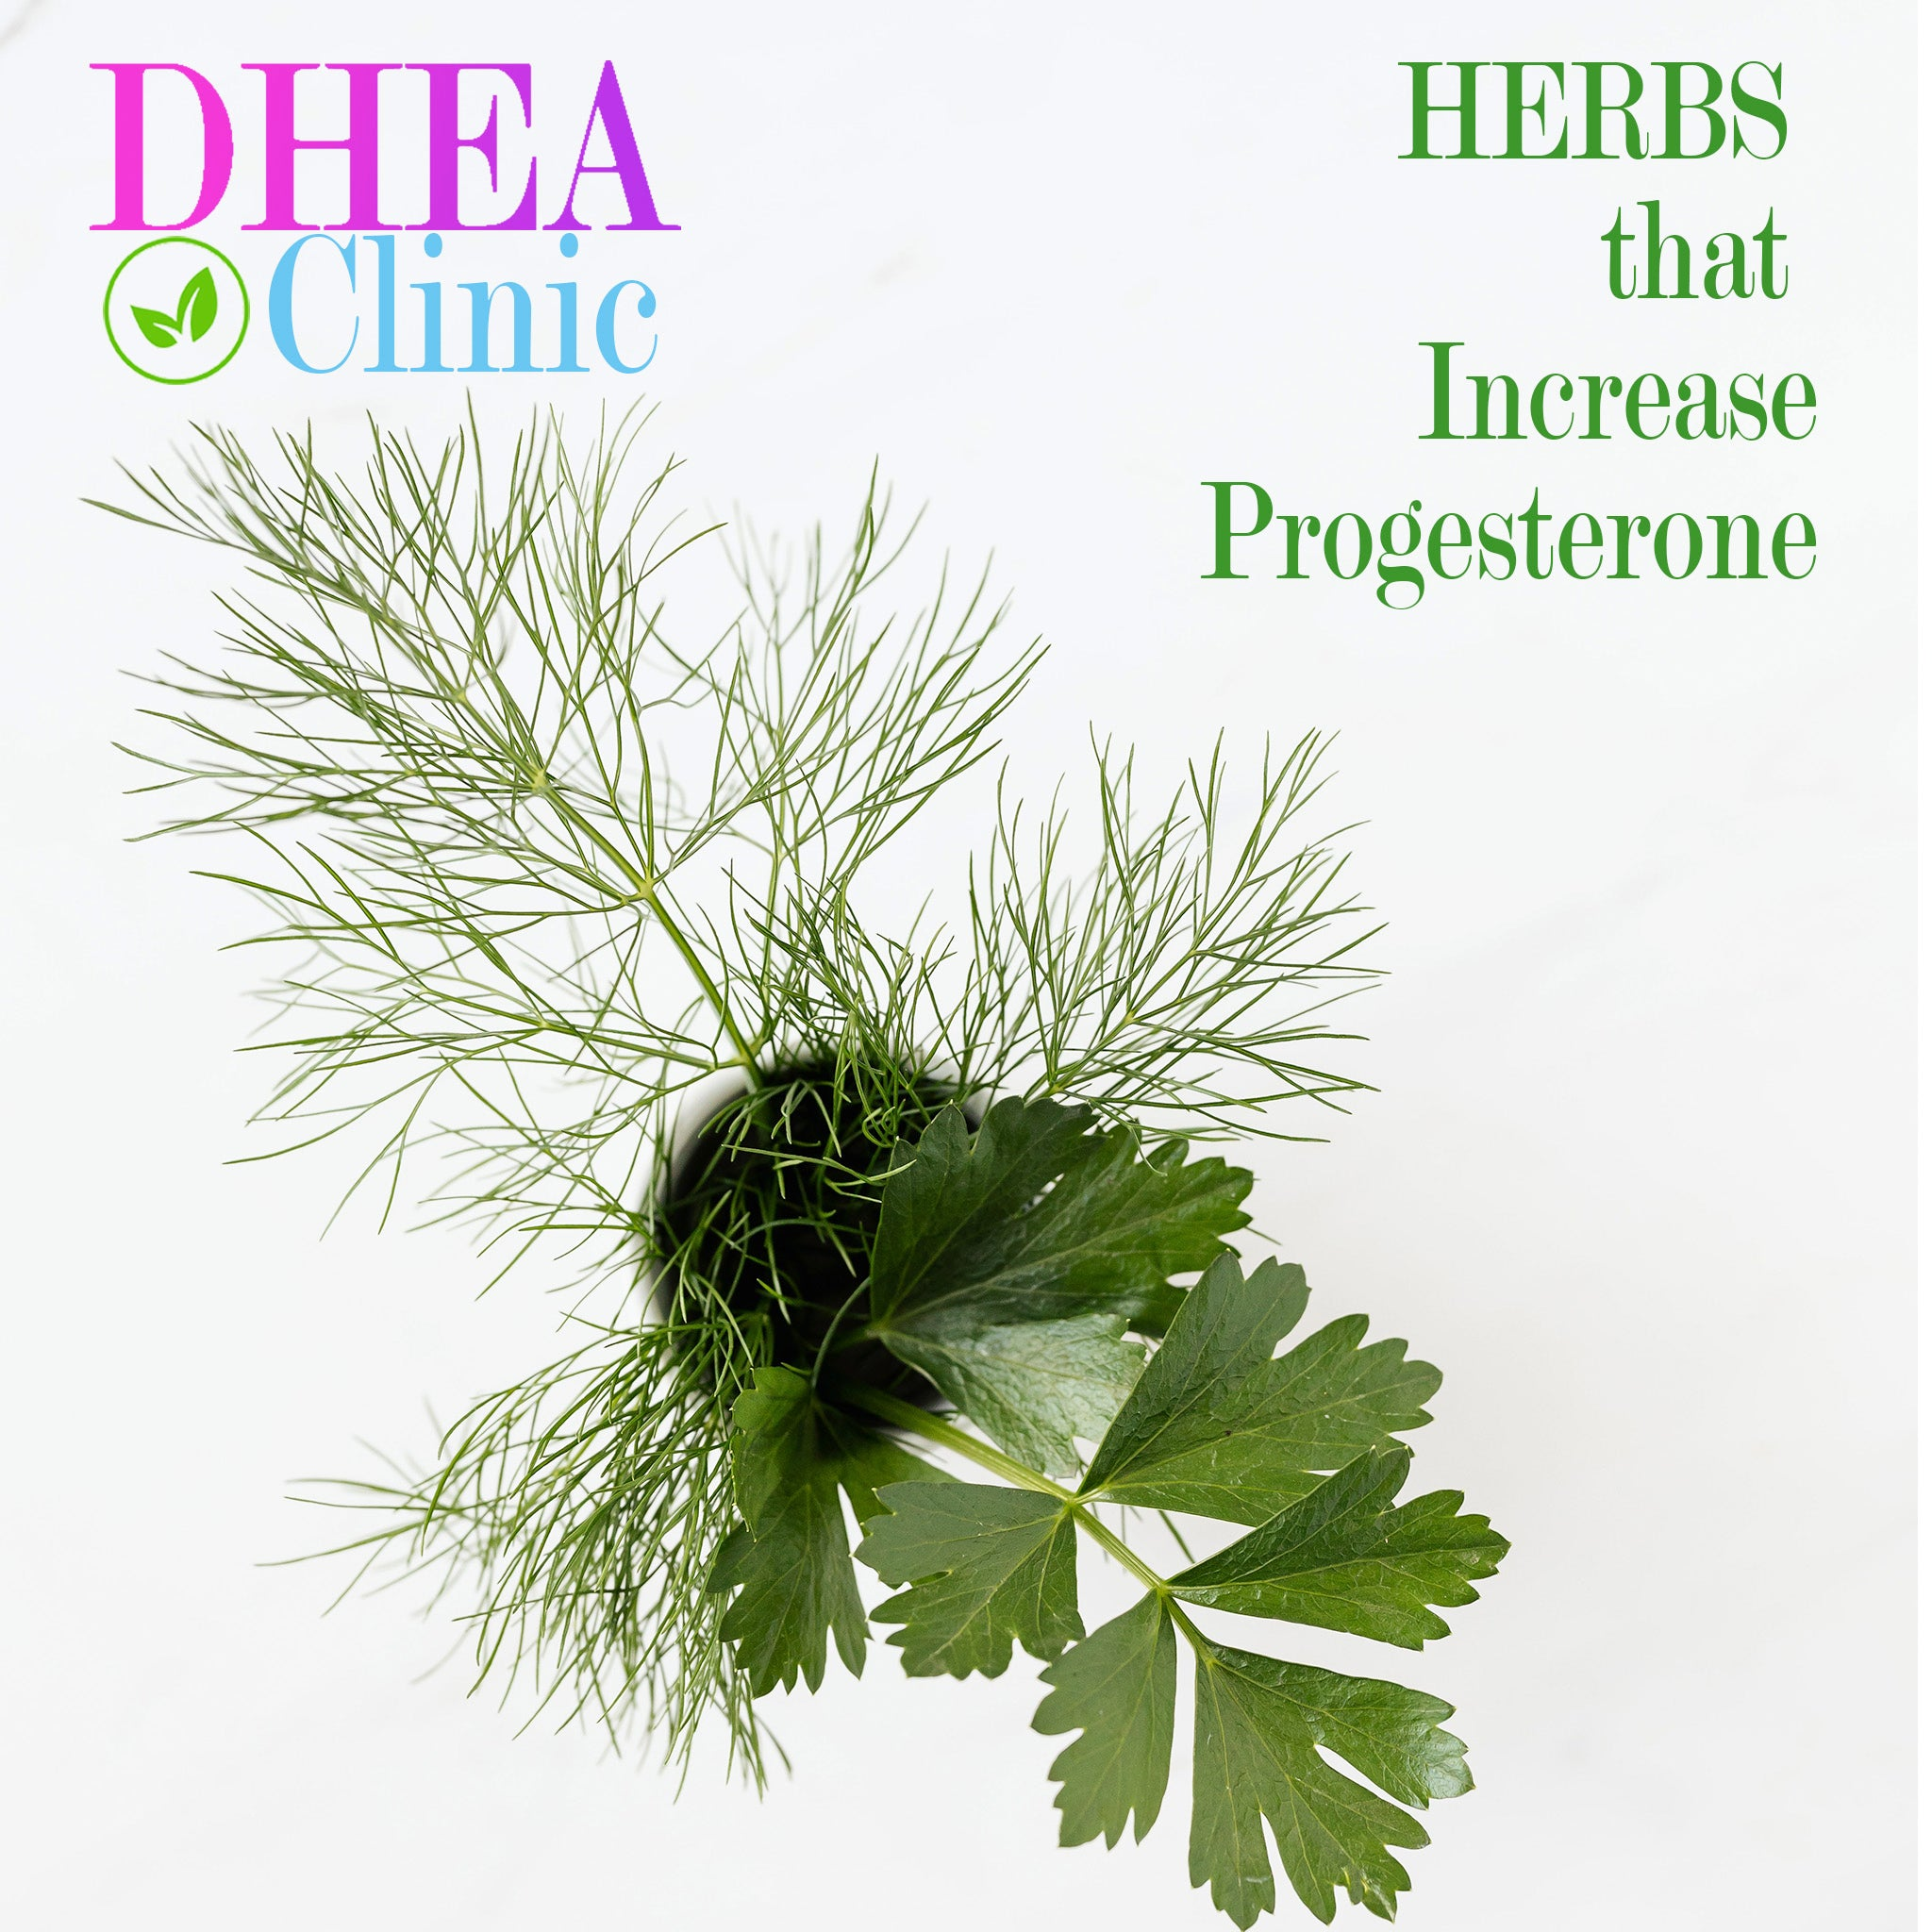 Herbs To Increase Progesterone: 6 Astounding Nutrients!